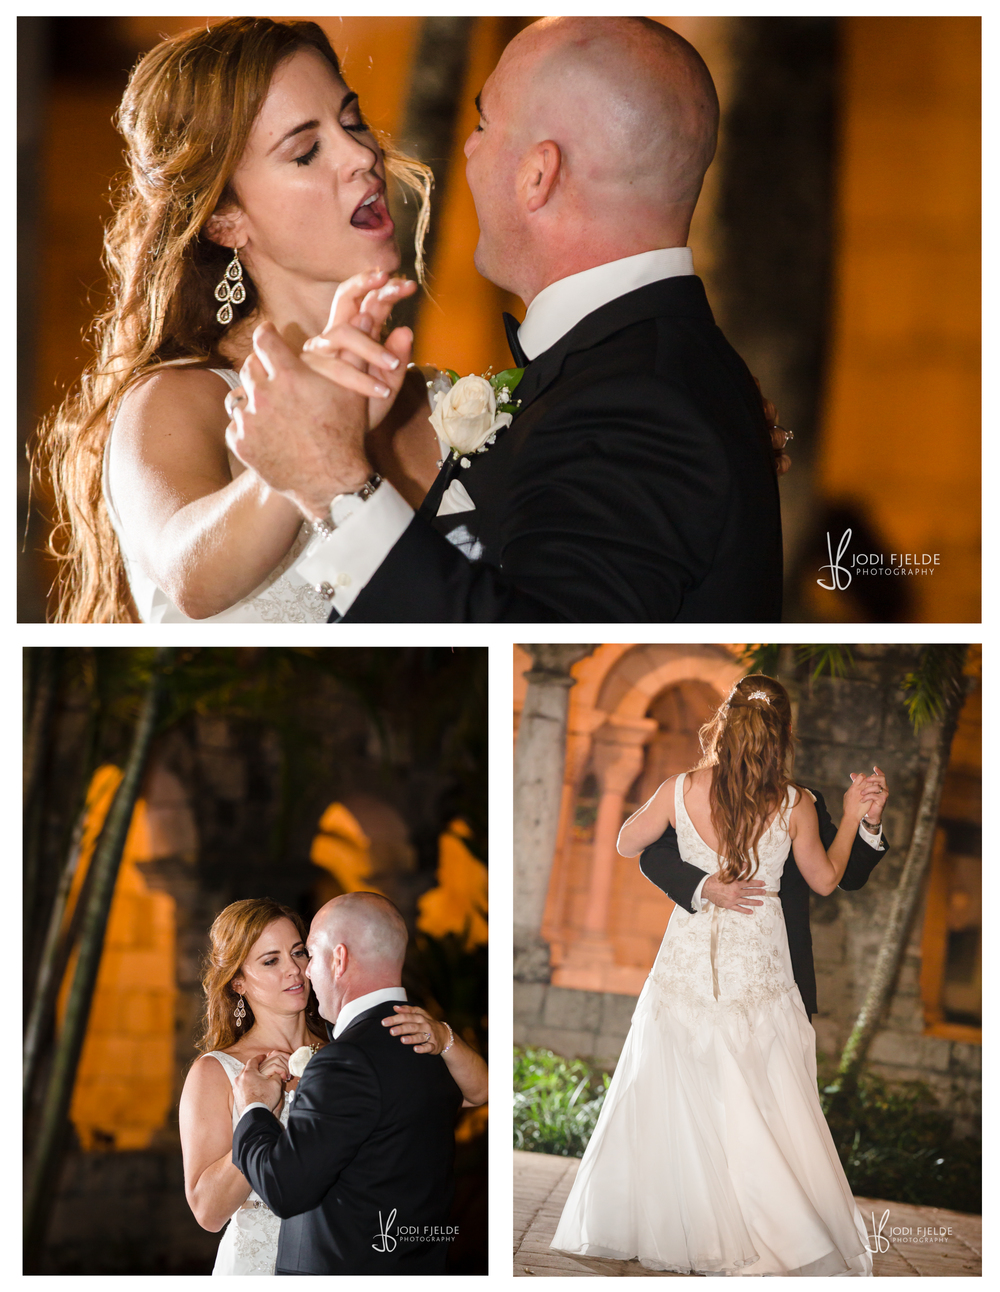 Ancient_Spanish_Monastery_Miami_Florida_wedding_Gio_Iggy_Jodi_Fjelde_Photography_16.jpg